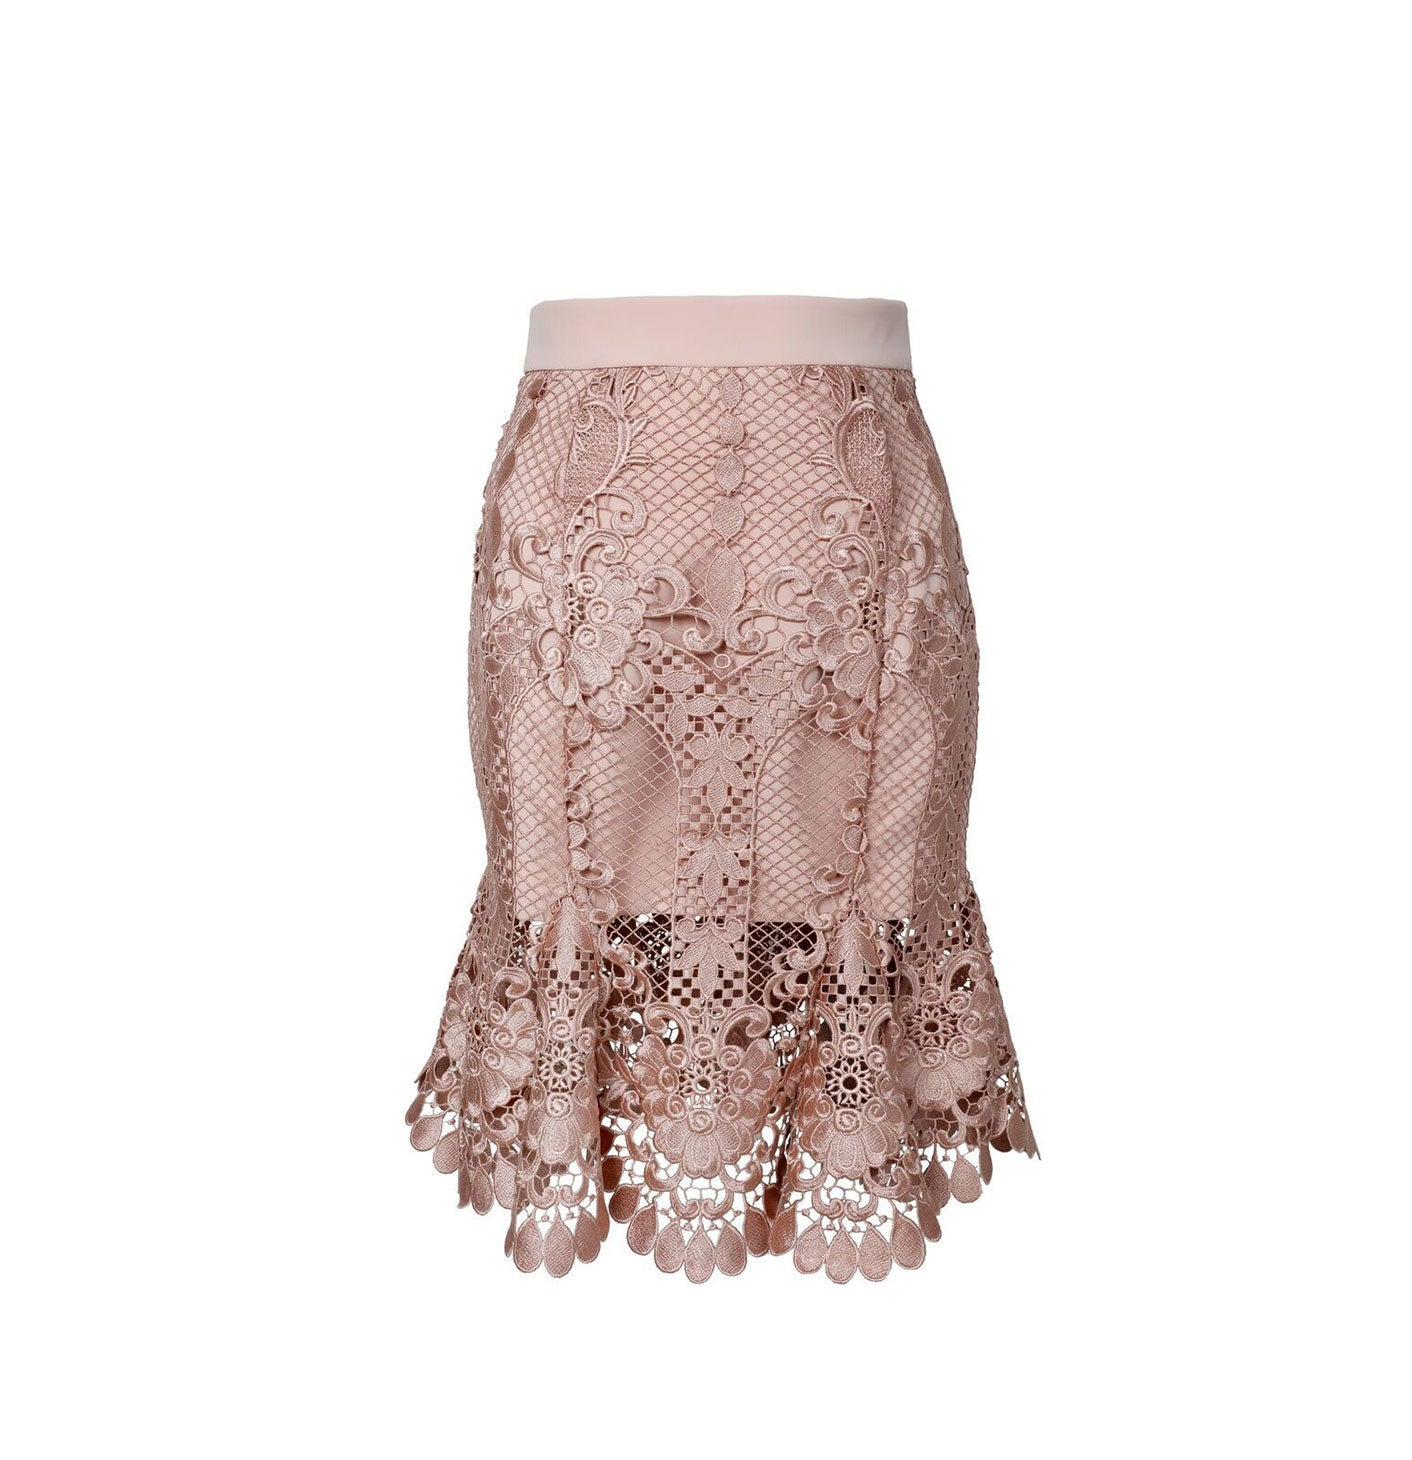 SHY DEMEANOR SKIRT